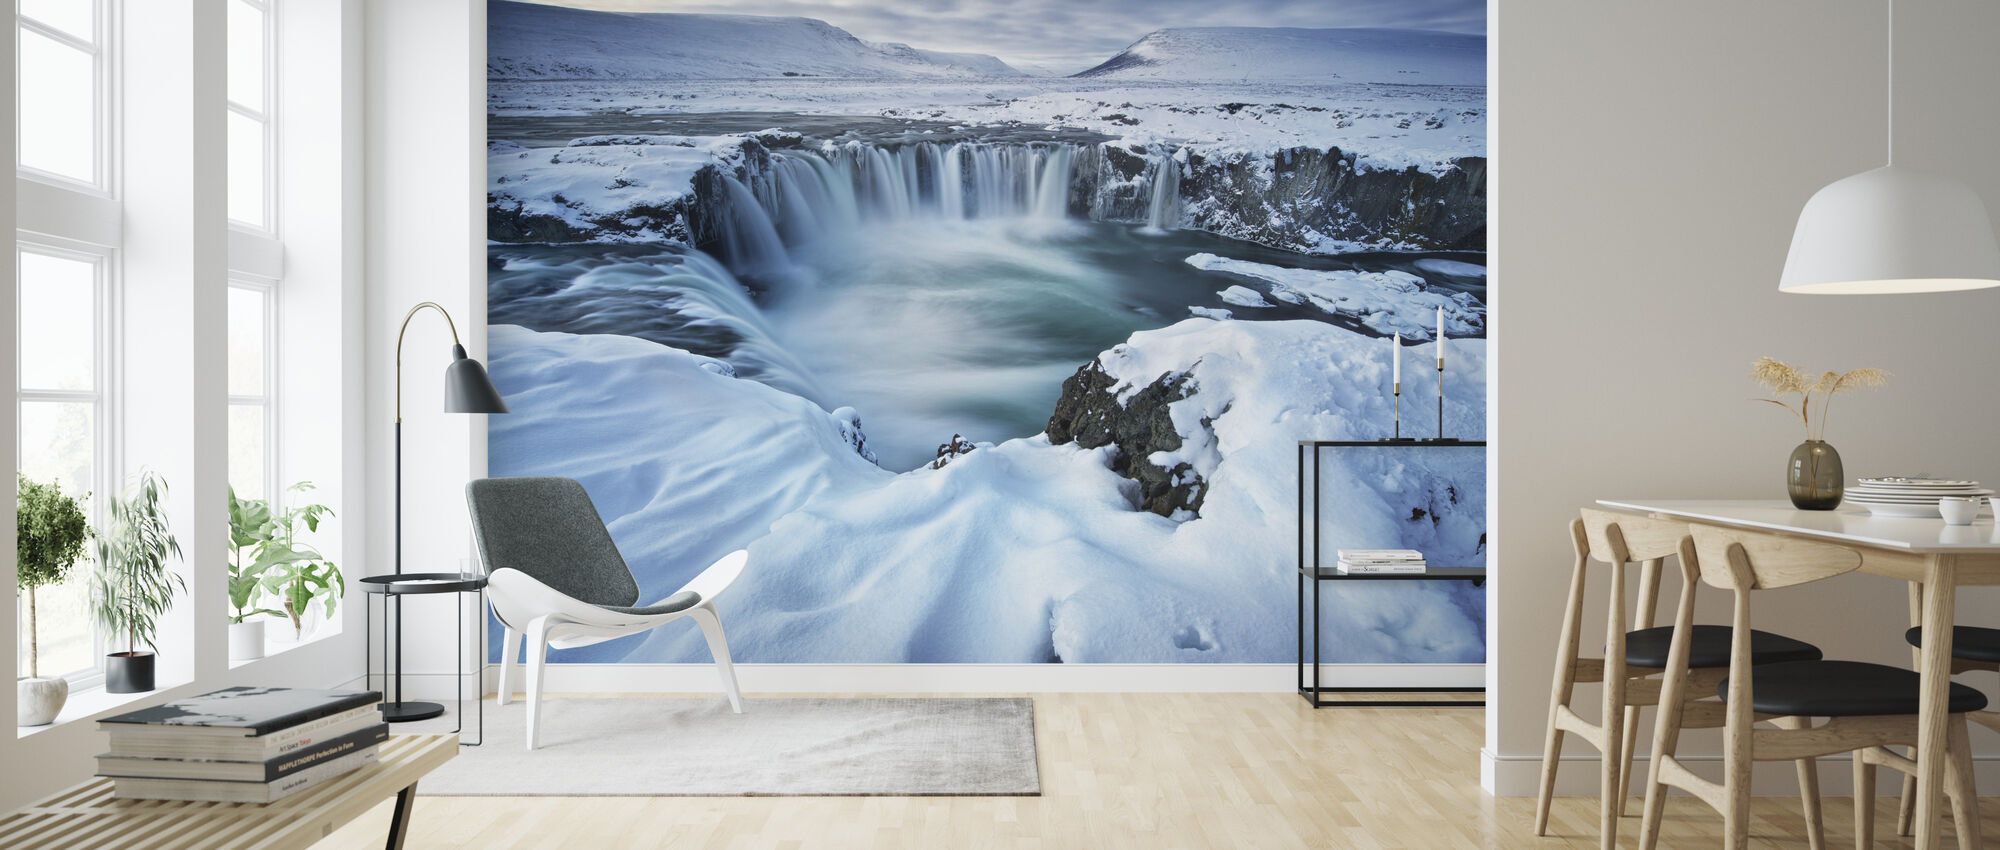 Waterfall of the Gods - Wallpaper - Living Room